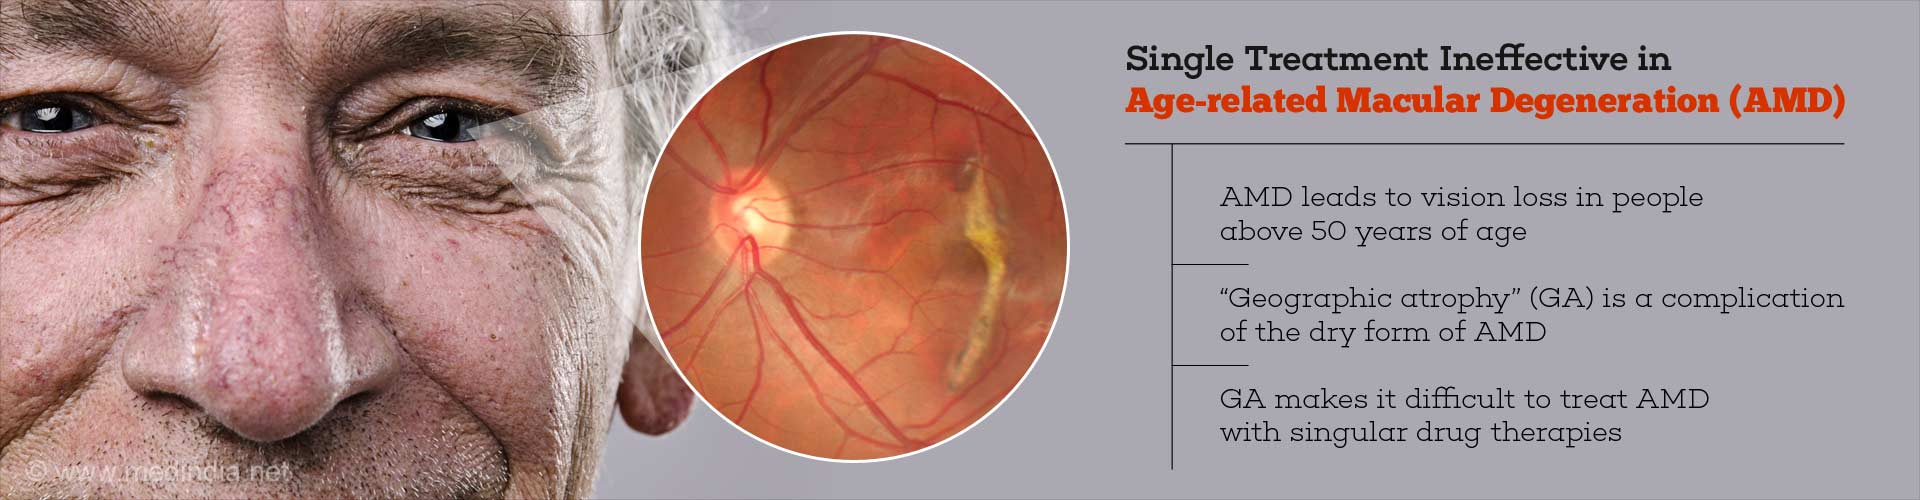 Age-related Macular Degeneration Beyond Single Treatment Mode